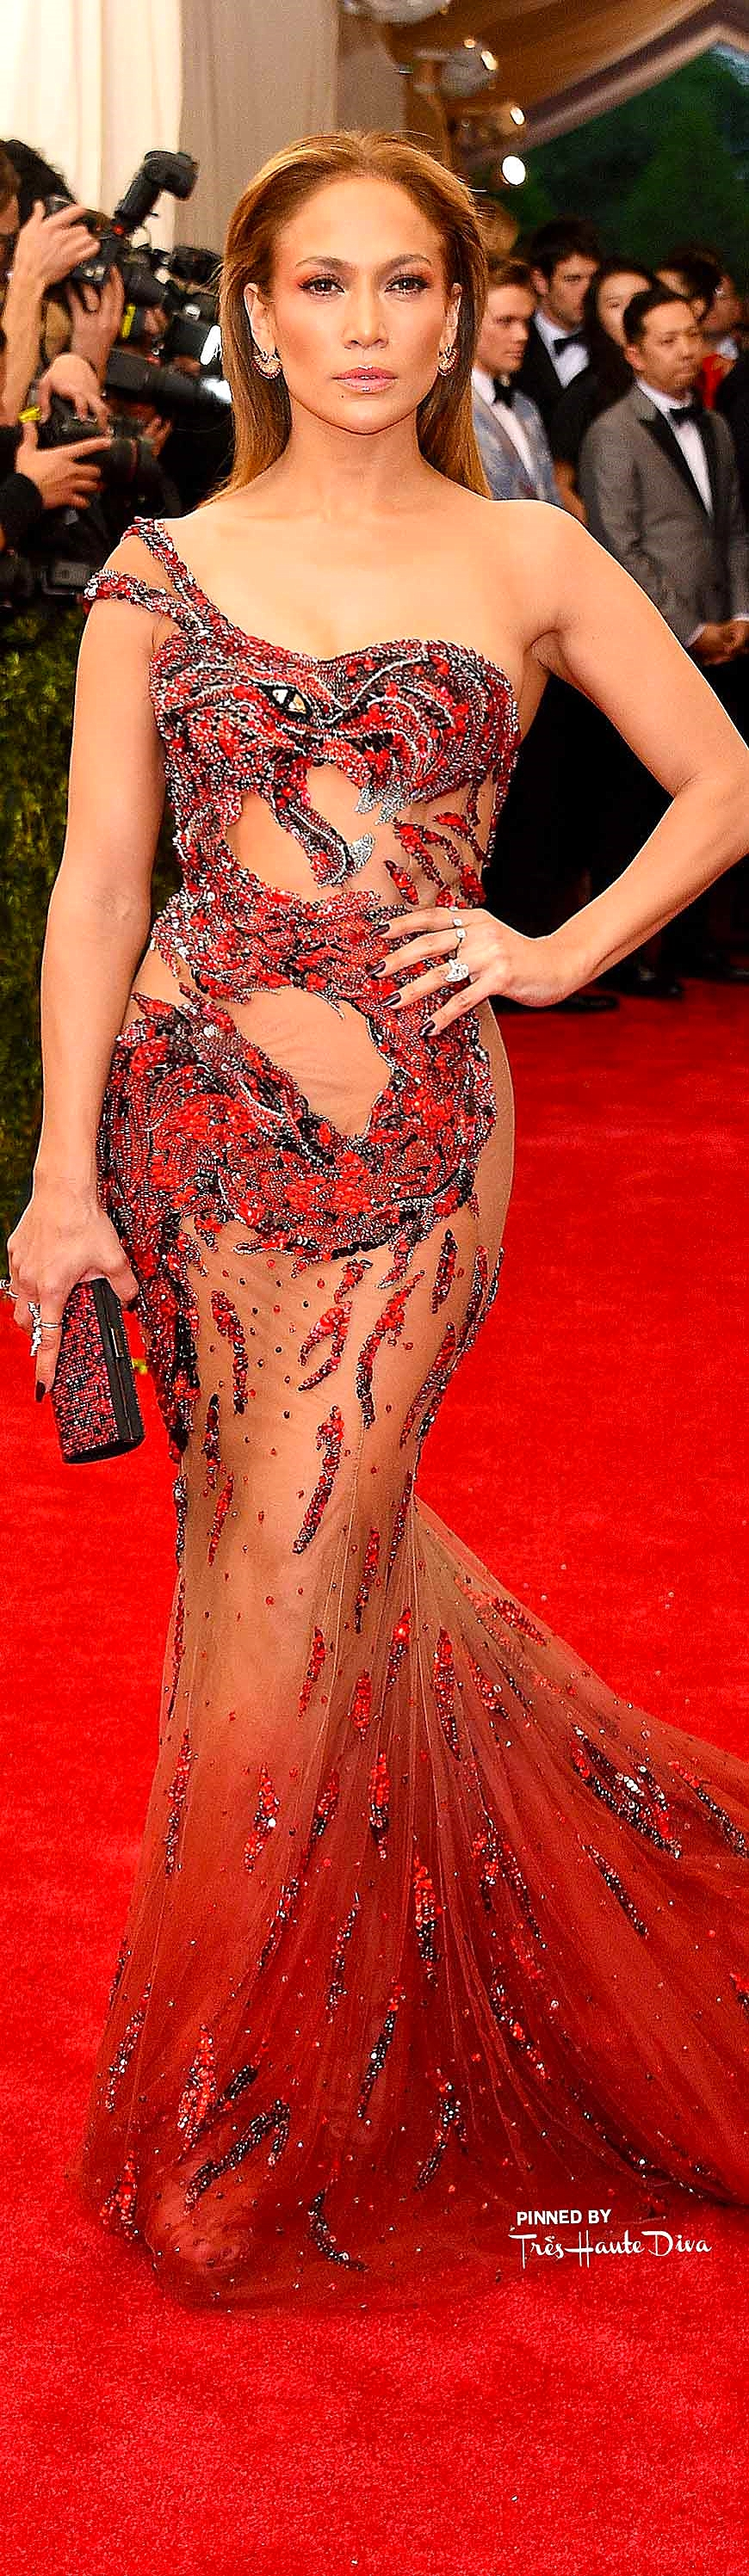 Jennifer Lopez in Versace Getty Images/ Larry Busacca